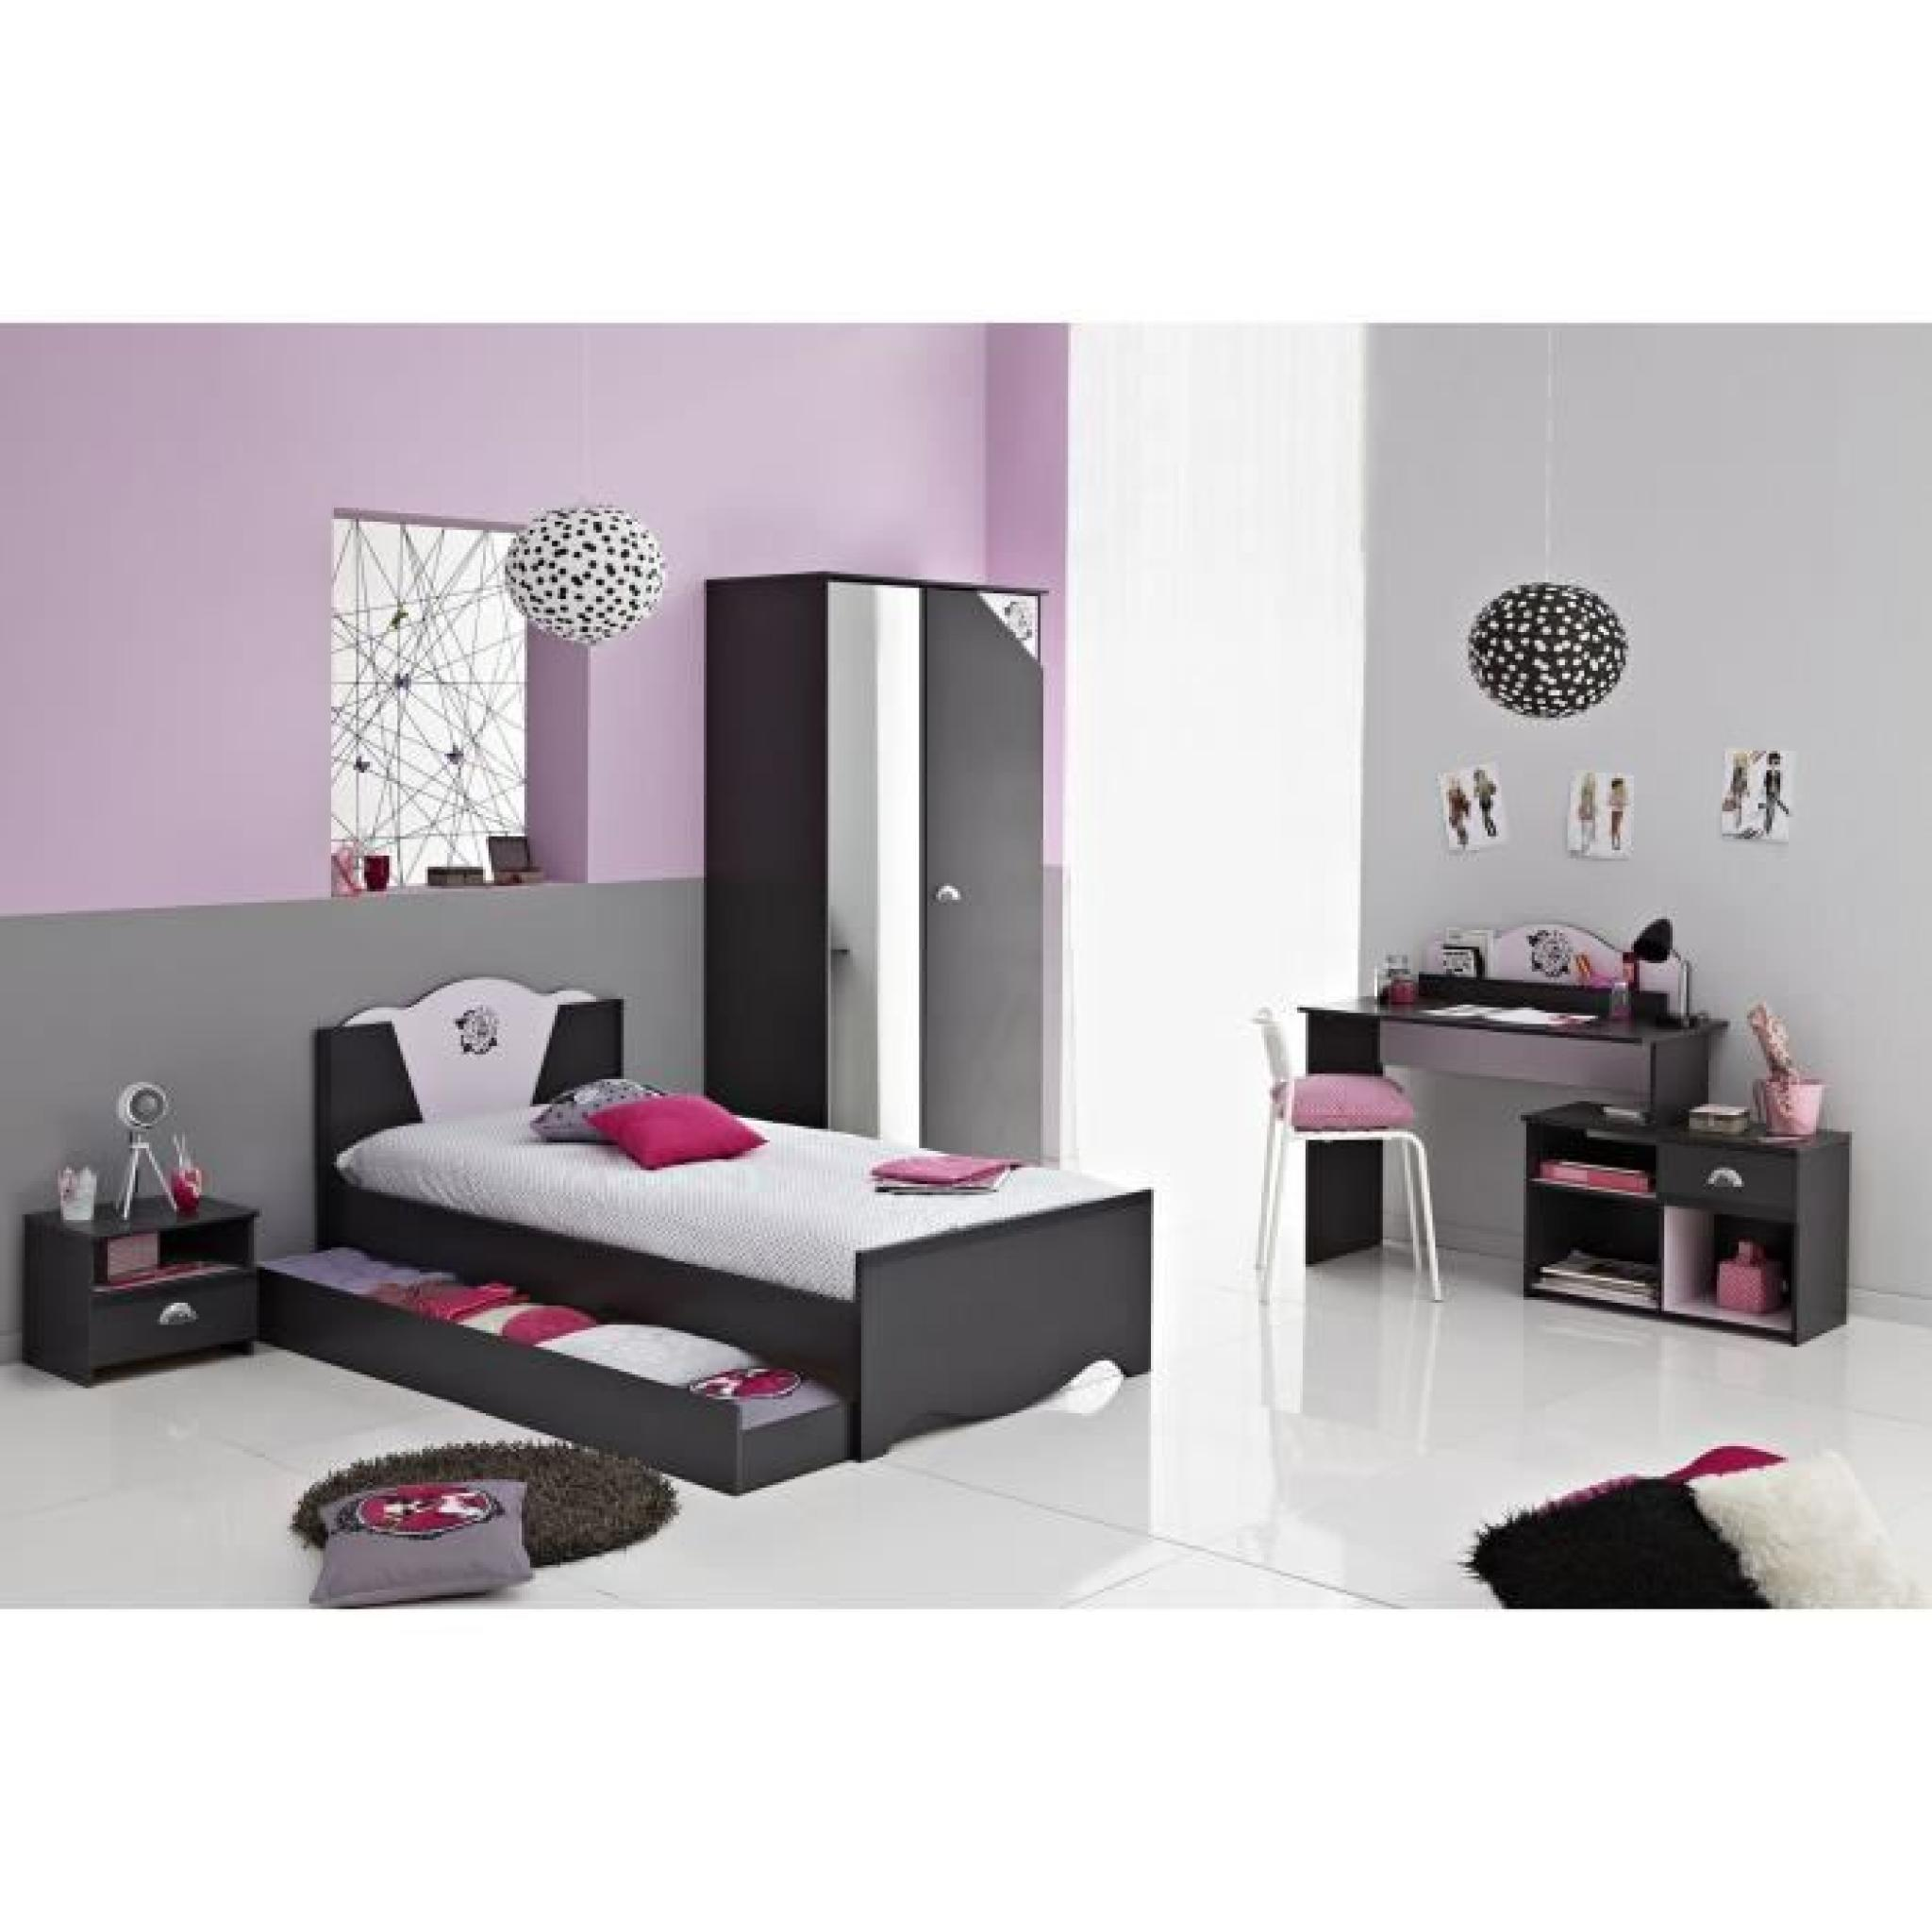 rock ensemble chambre enfant gris ombre rose achat vente chambre complete pas cher couleur. Black Bedroom Furniture Sets. Home Design Ideas